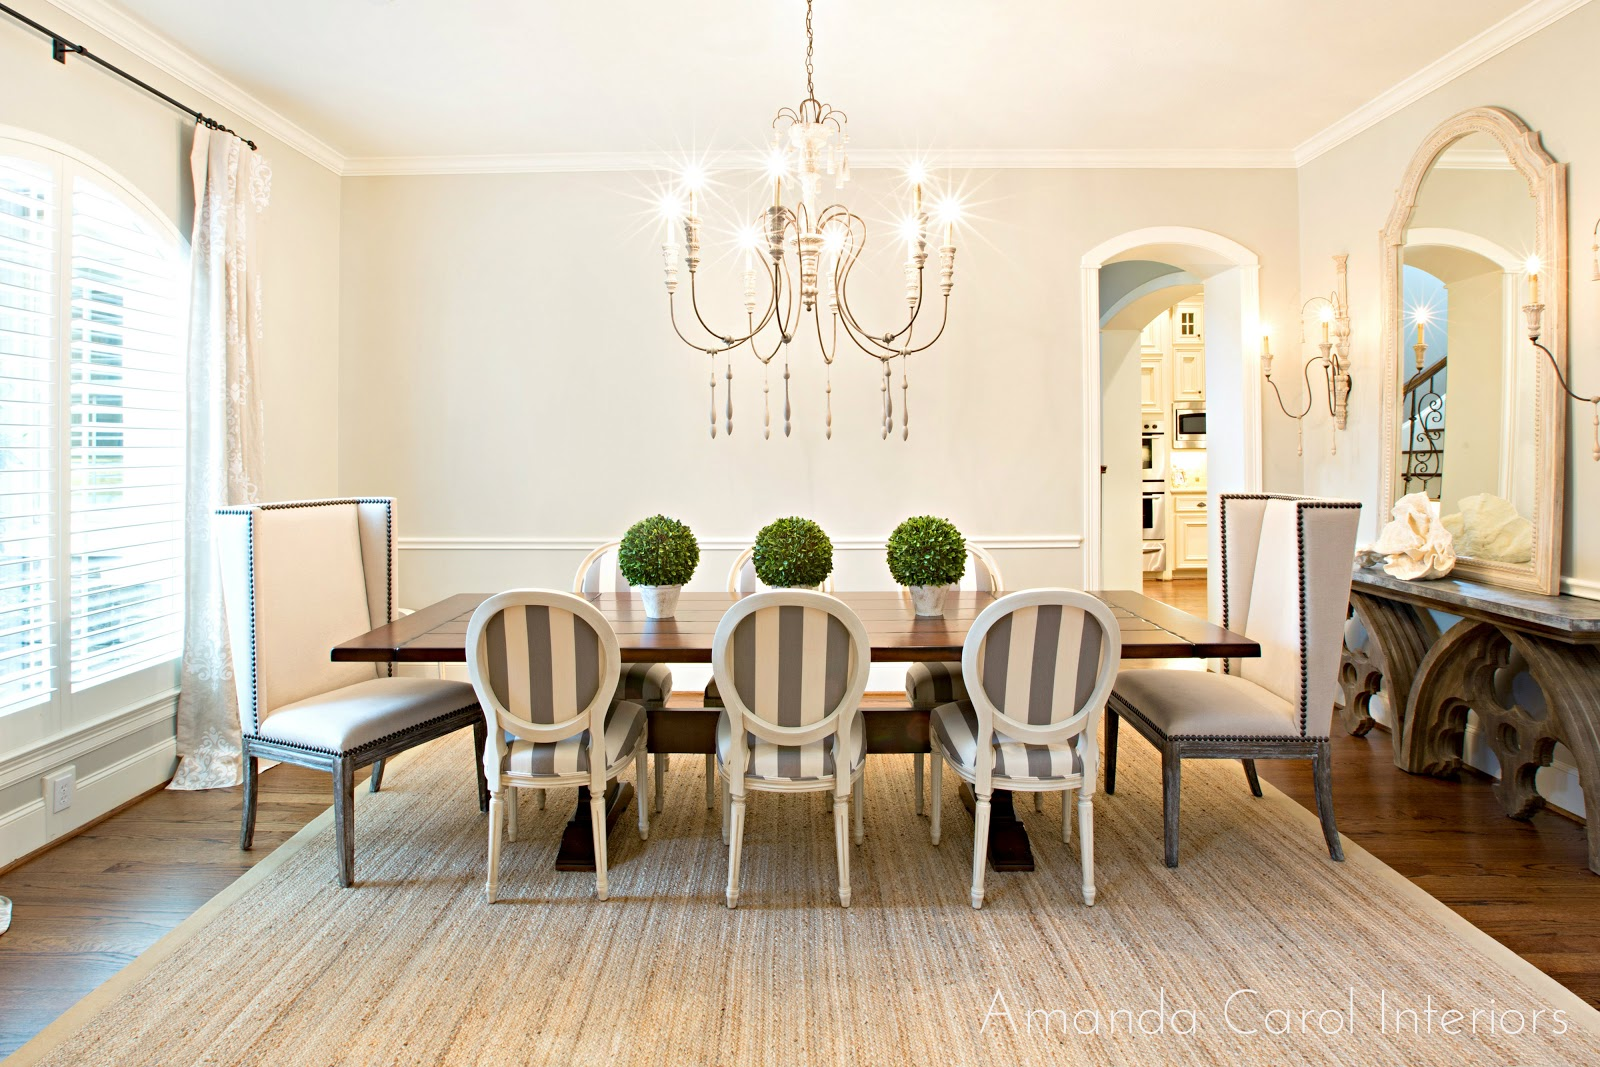 Upholstered Dining Room Chairs With Arms - Amanda carol interiors grey upholstered dining room chairs